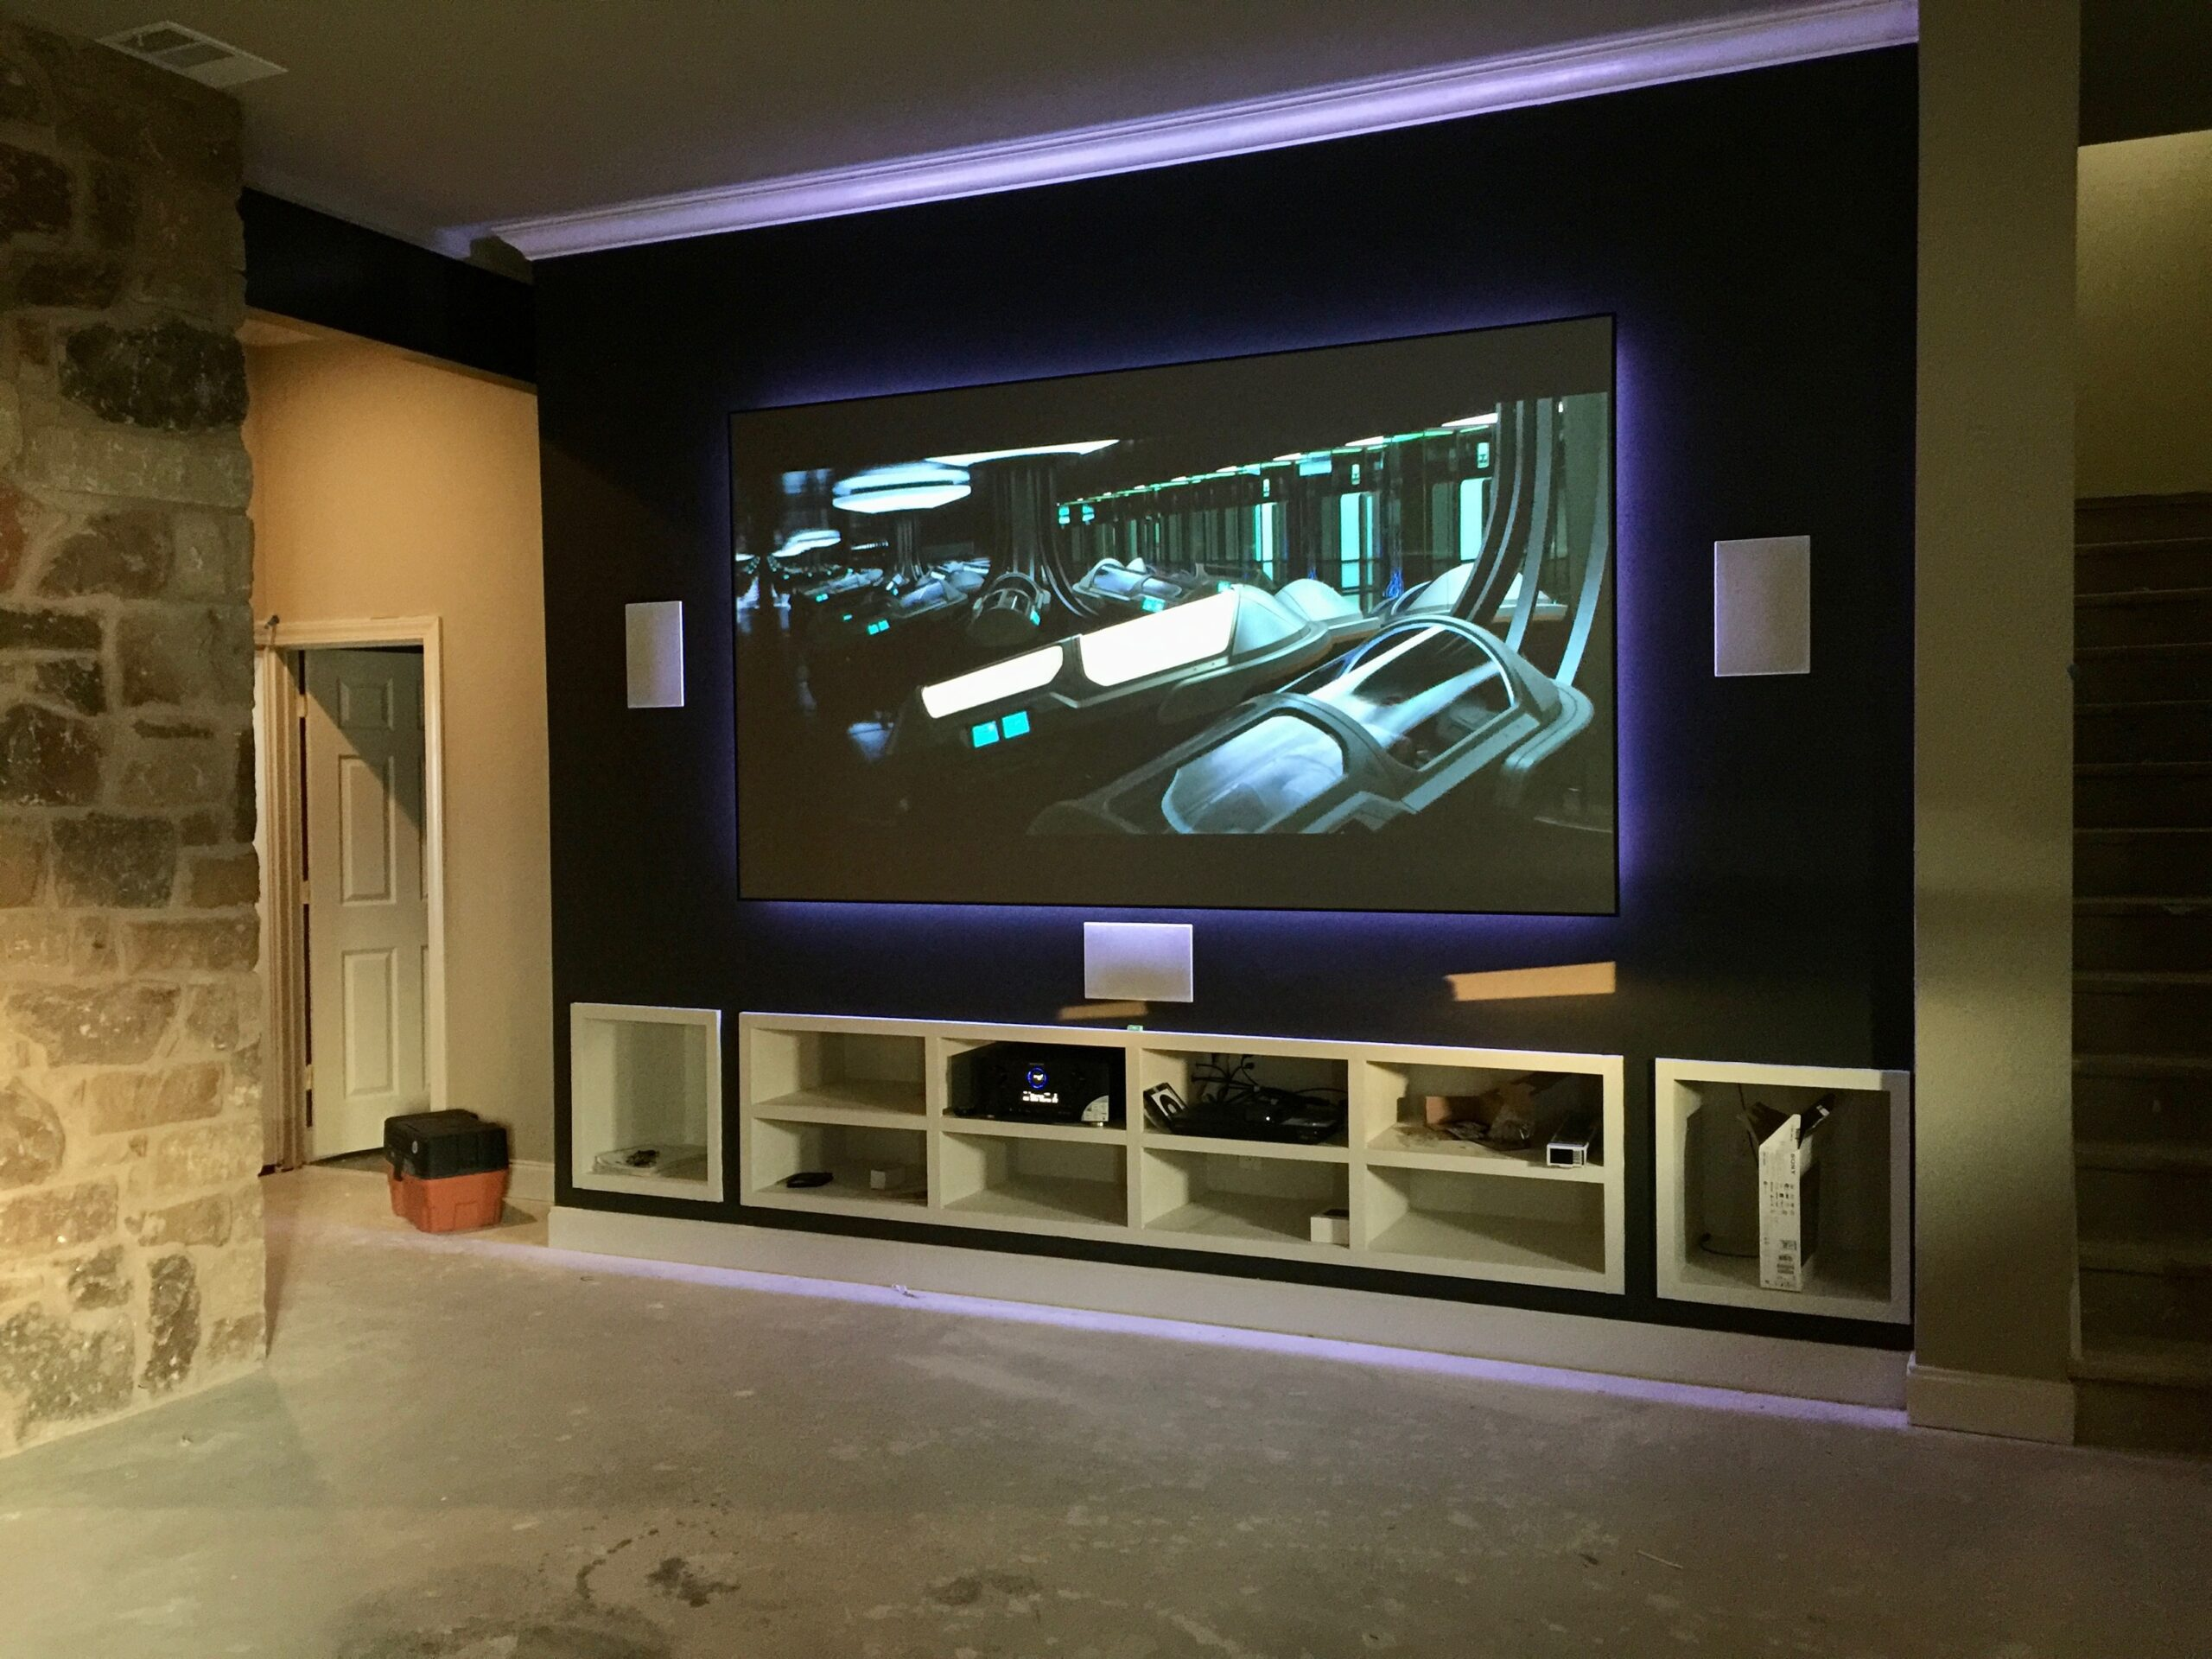 Home theater room with short throw laser projection, hidden pristine sound system and custom theater lighting